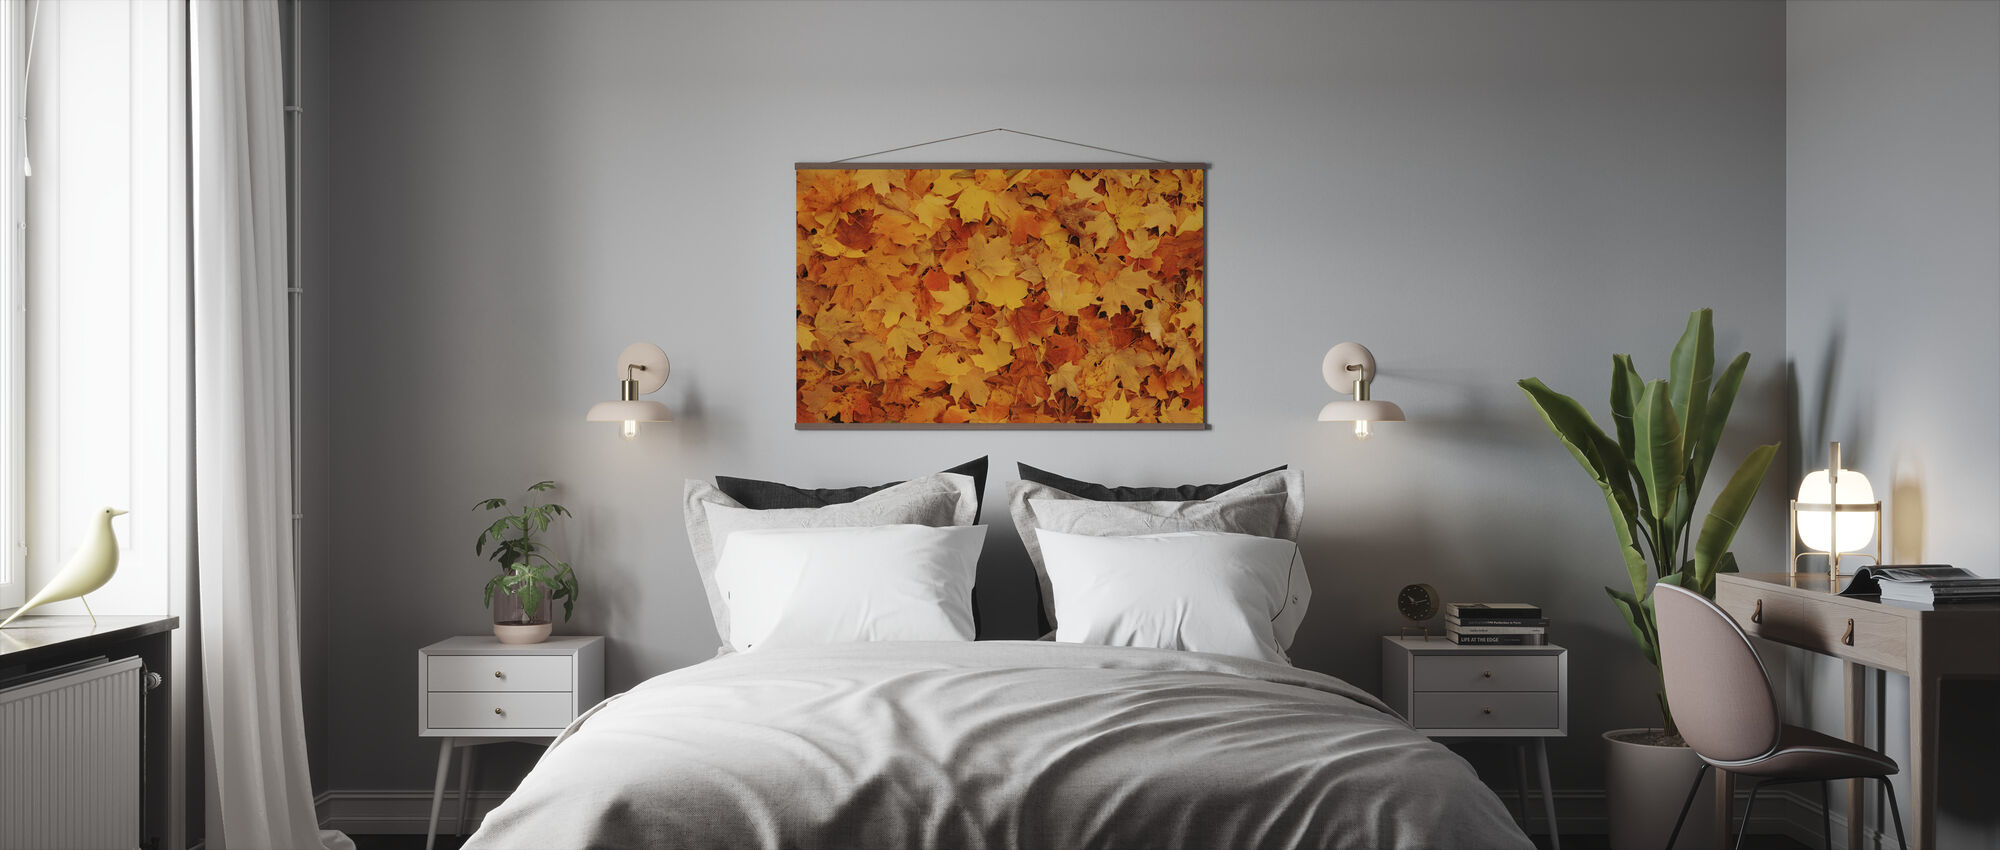 Bed of Autumn Maple Leaves - Poster - Bedroom